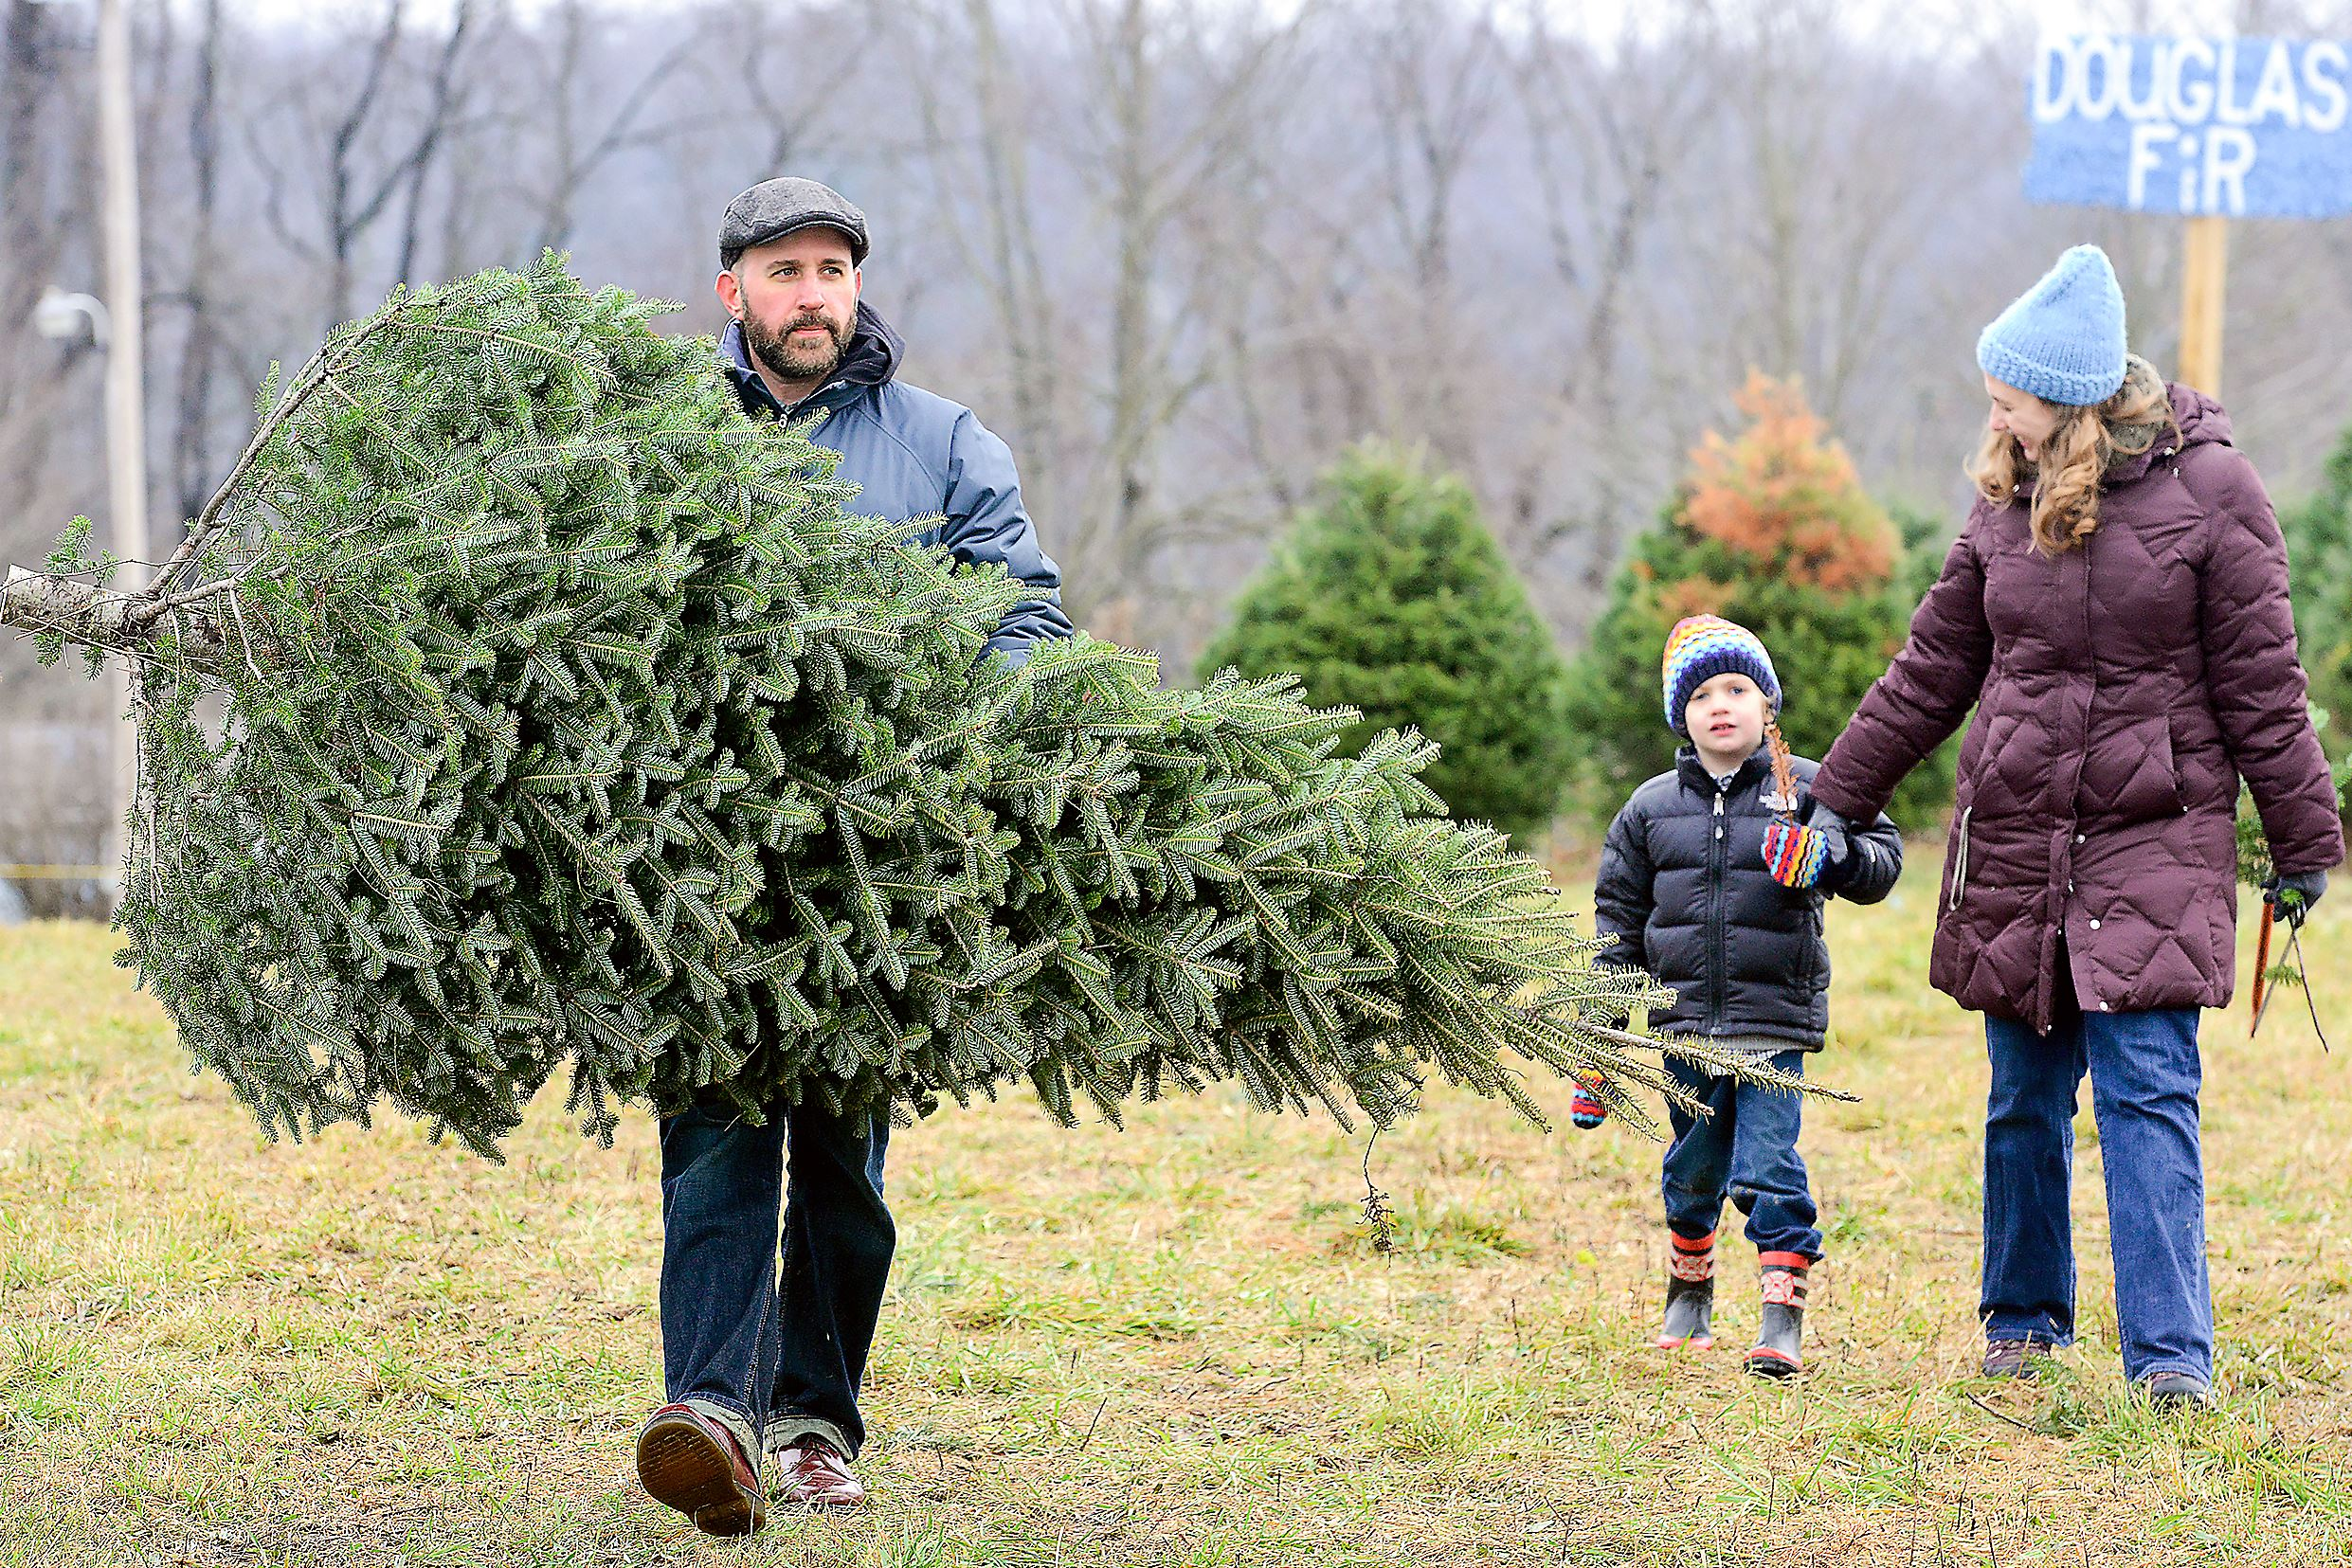 Take A Bough: Check Out These Christmas Tree Farms In The